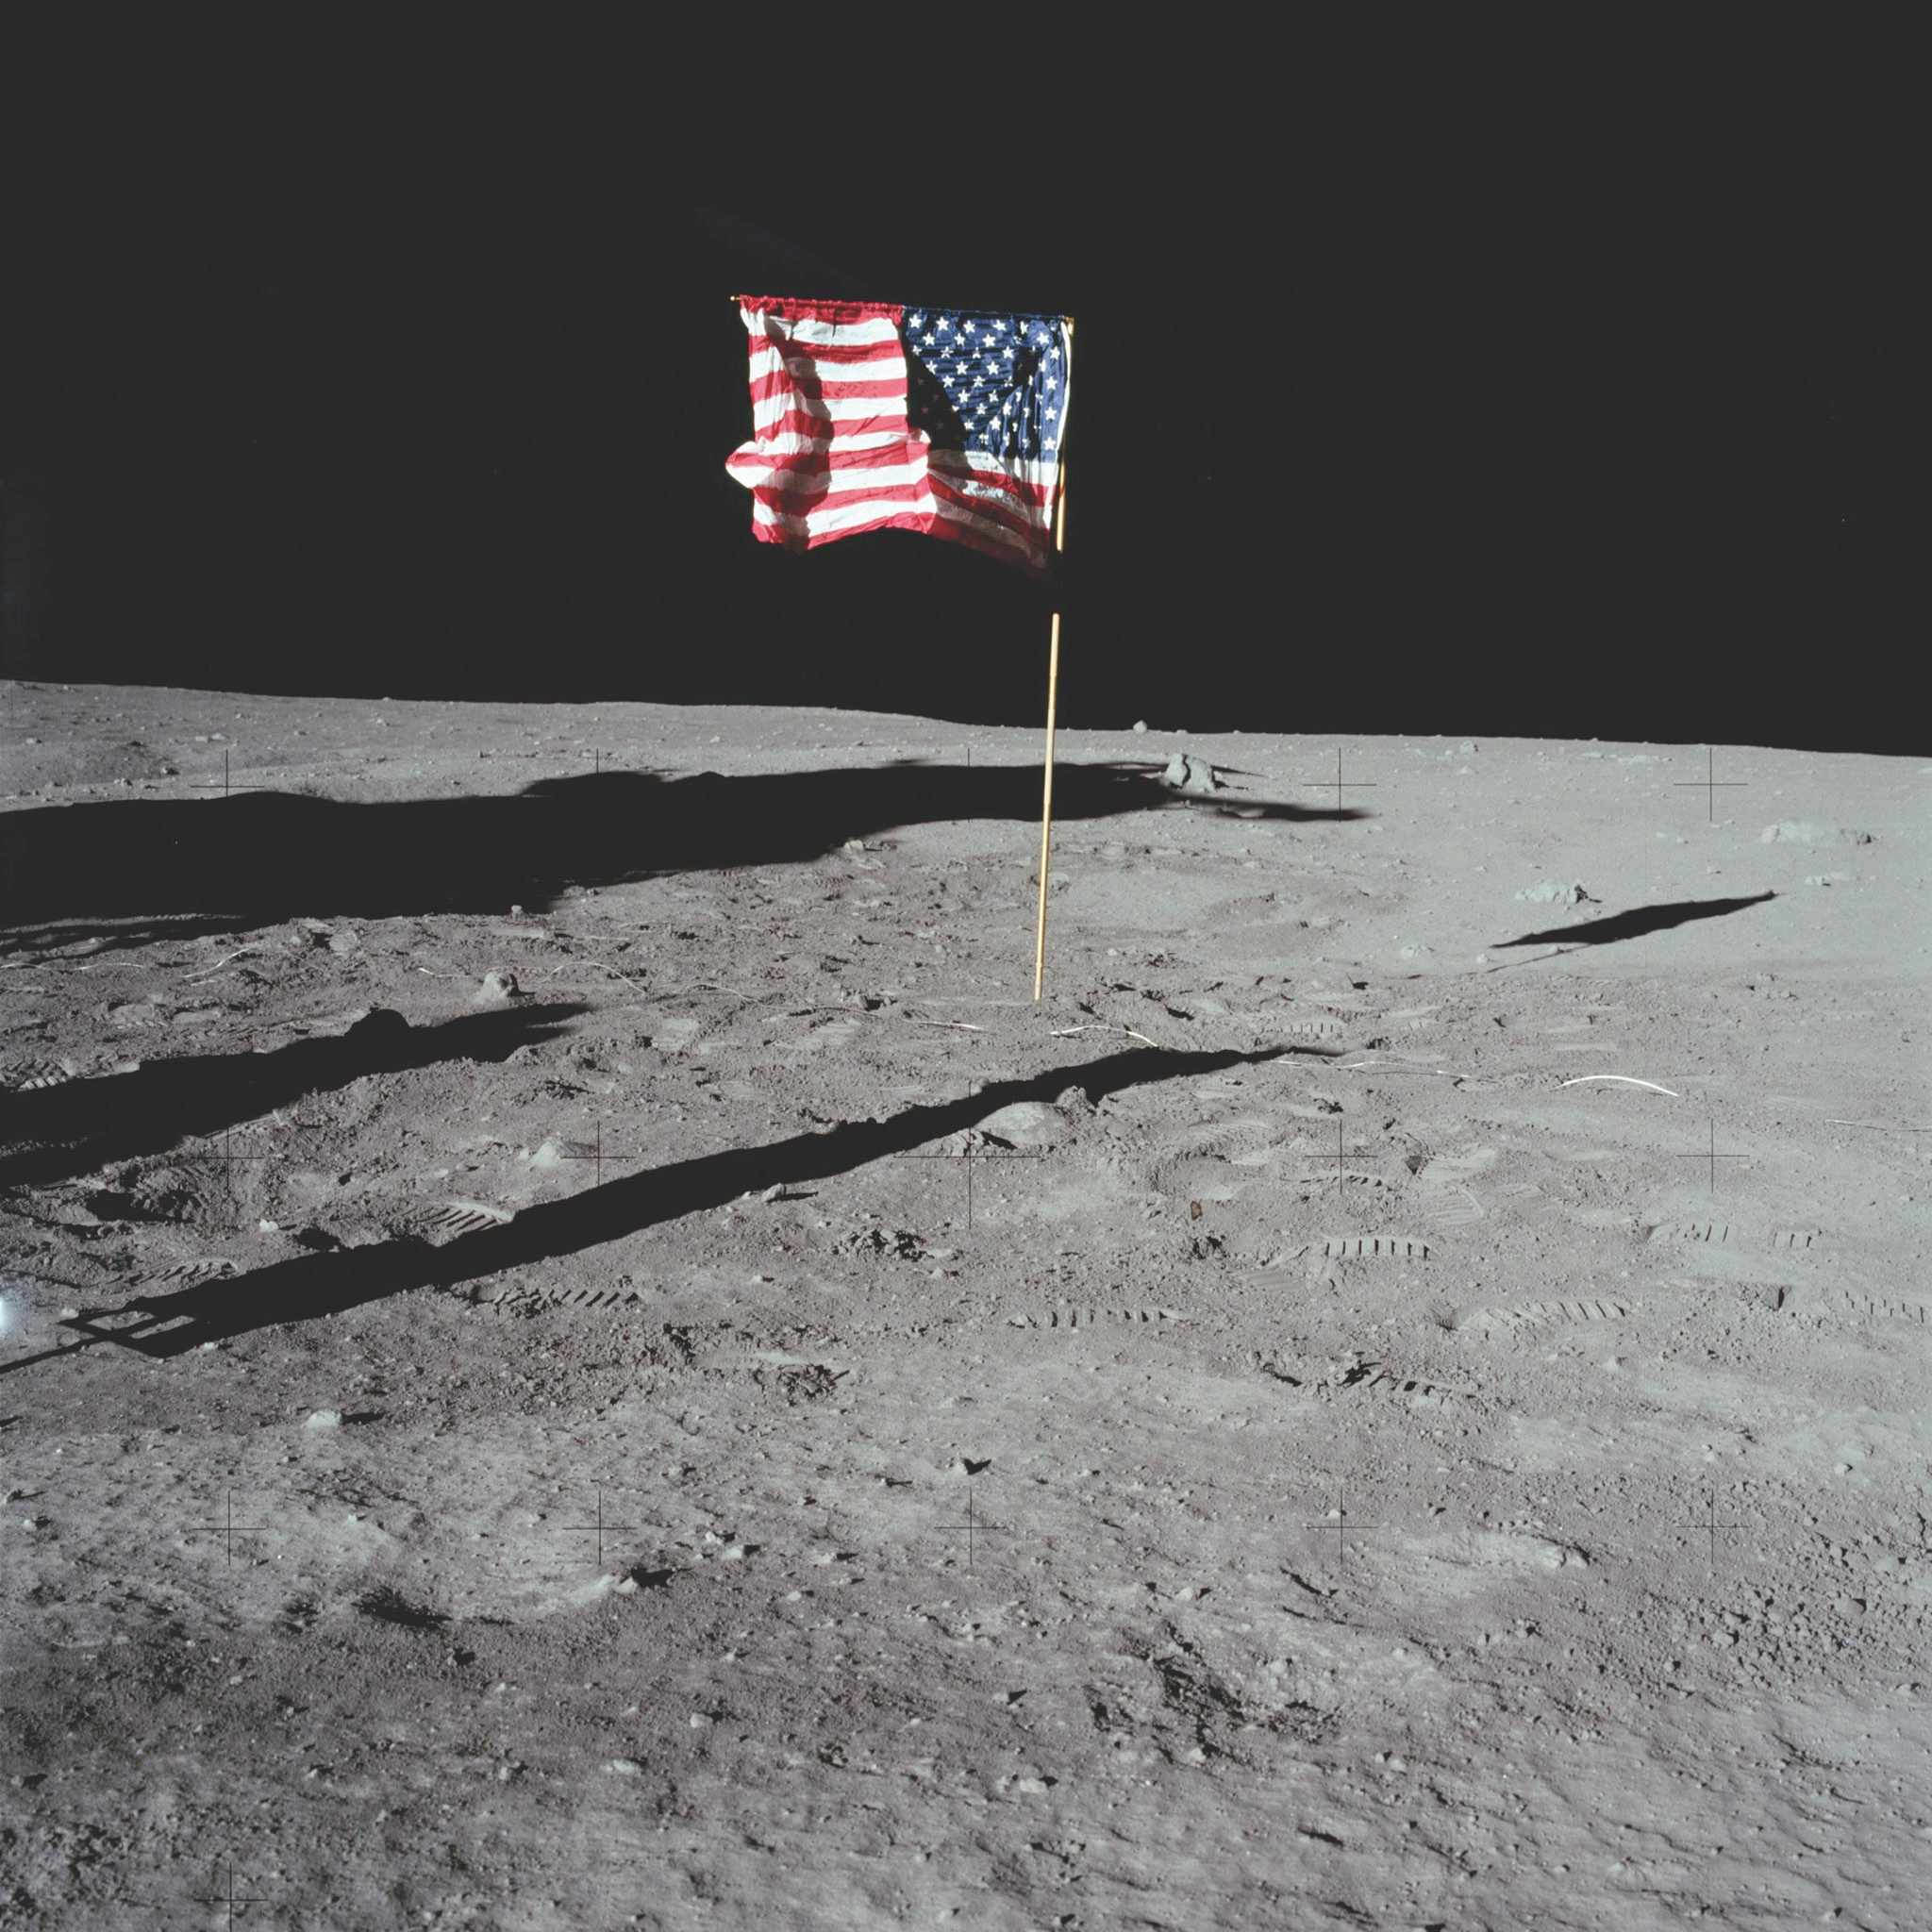 Around 90 minutes into his moonwalk, Buzz Aldrin took this photo of the American flag planted in the lunar landscape © NASA/JPL